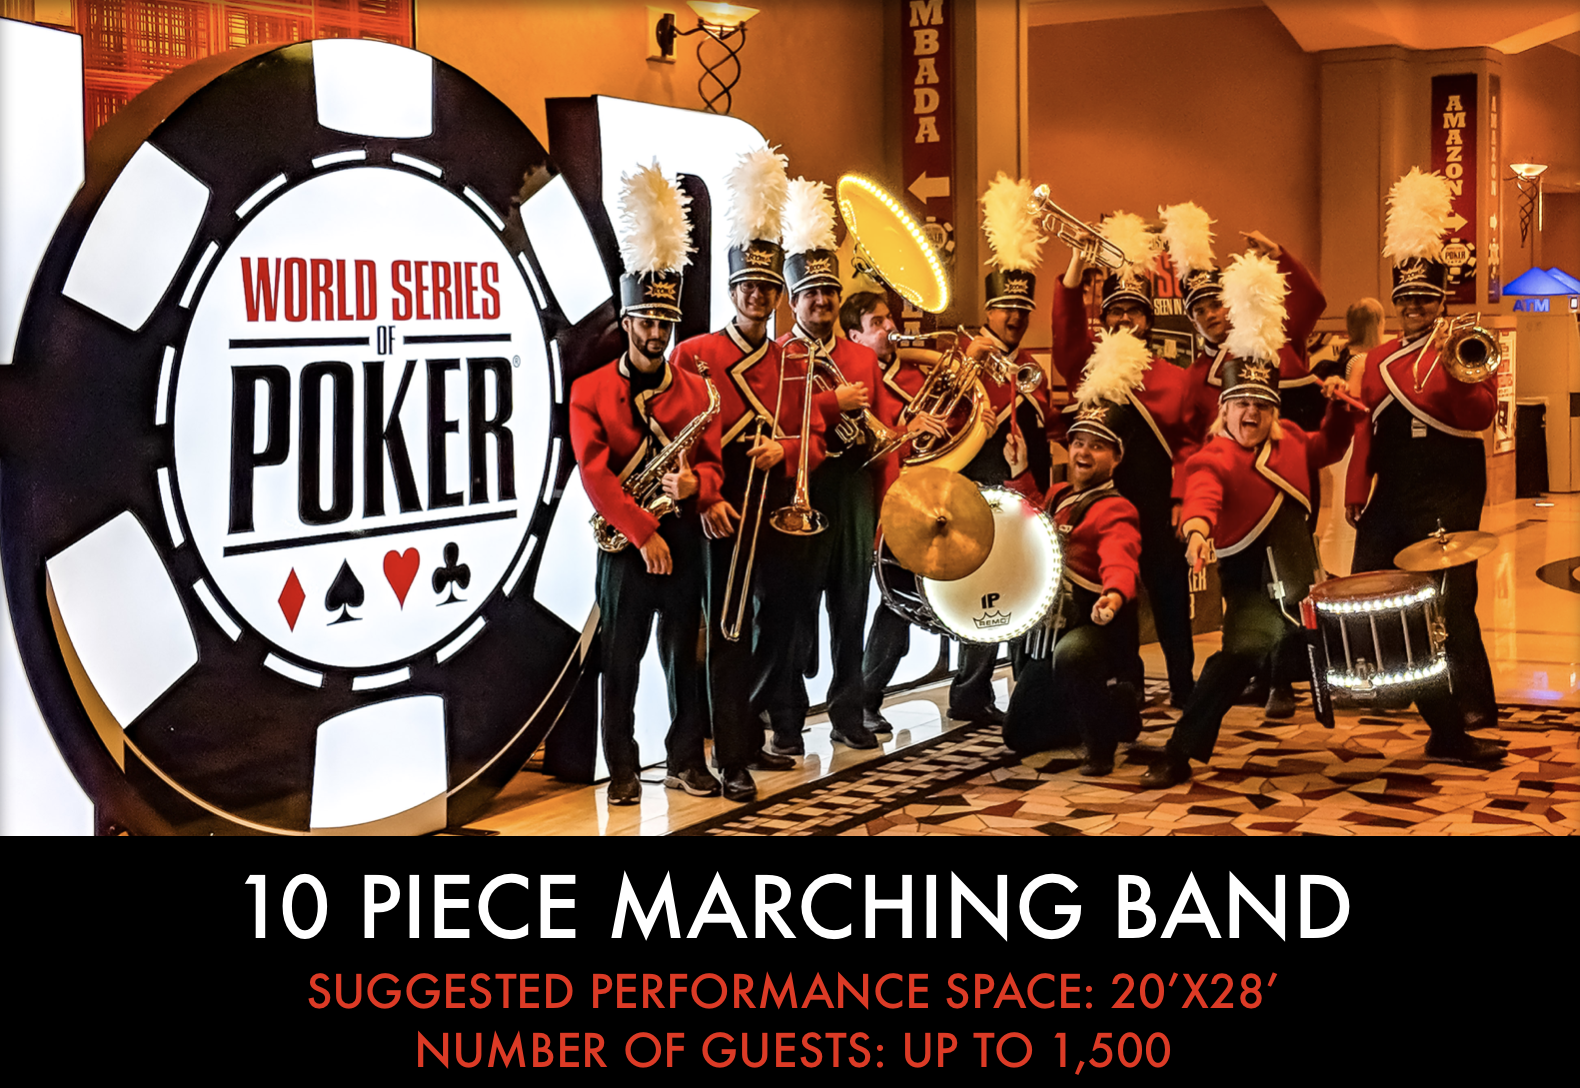 10 piece Marching Band